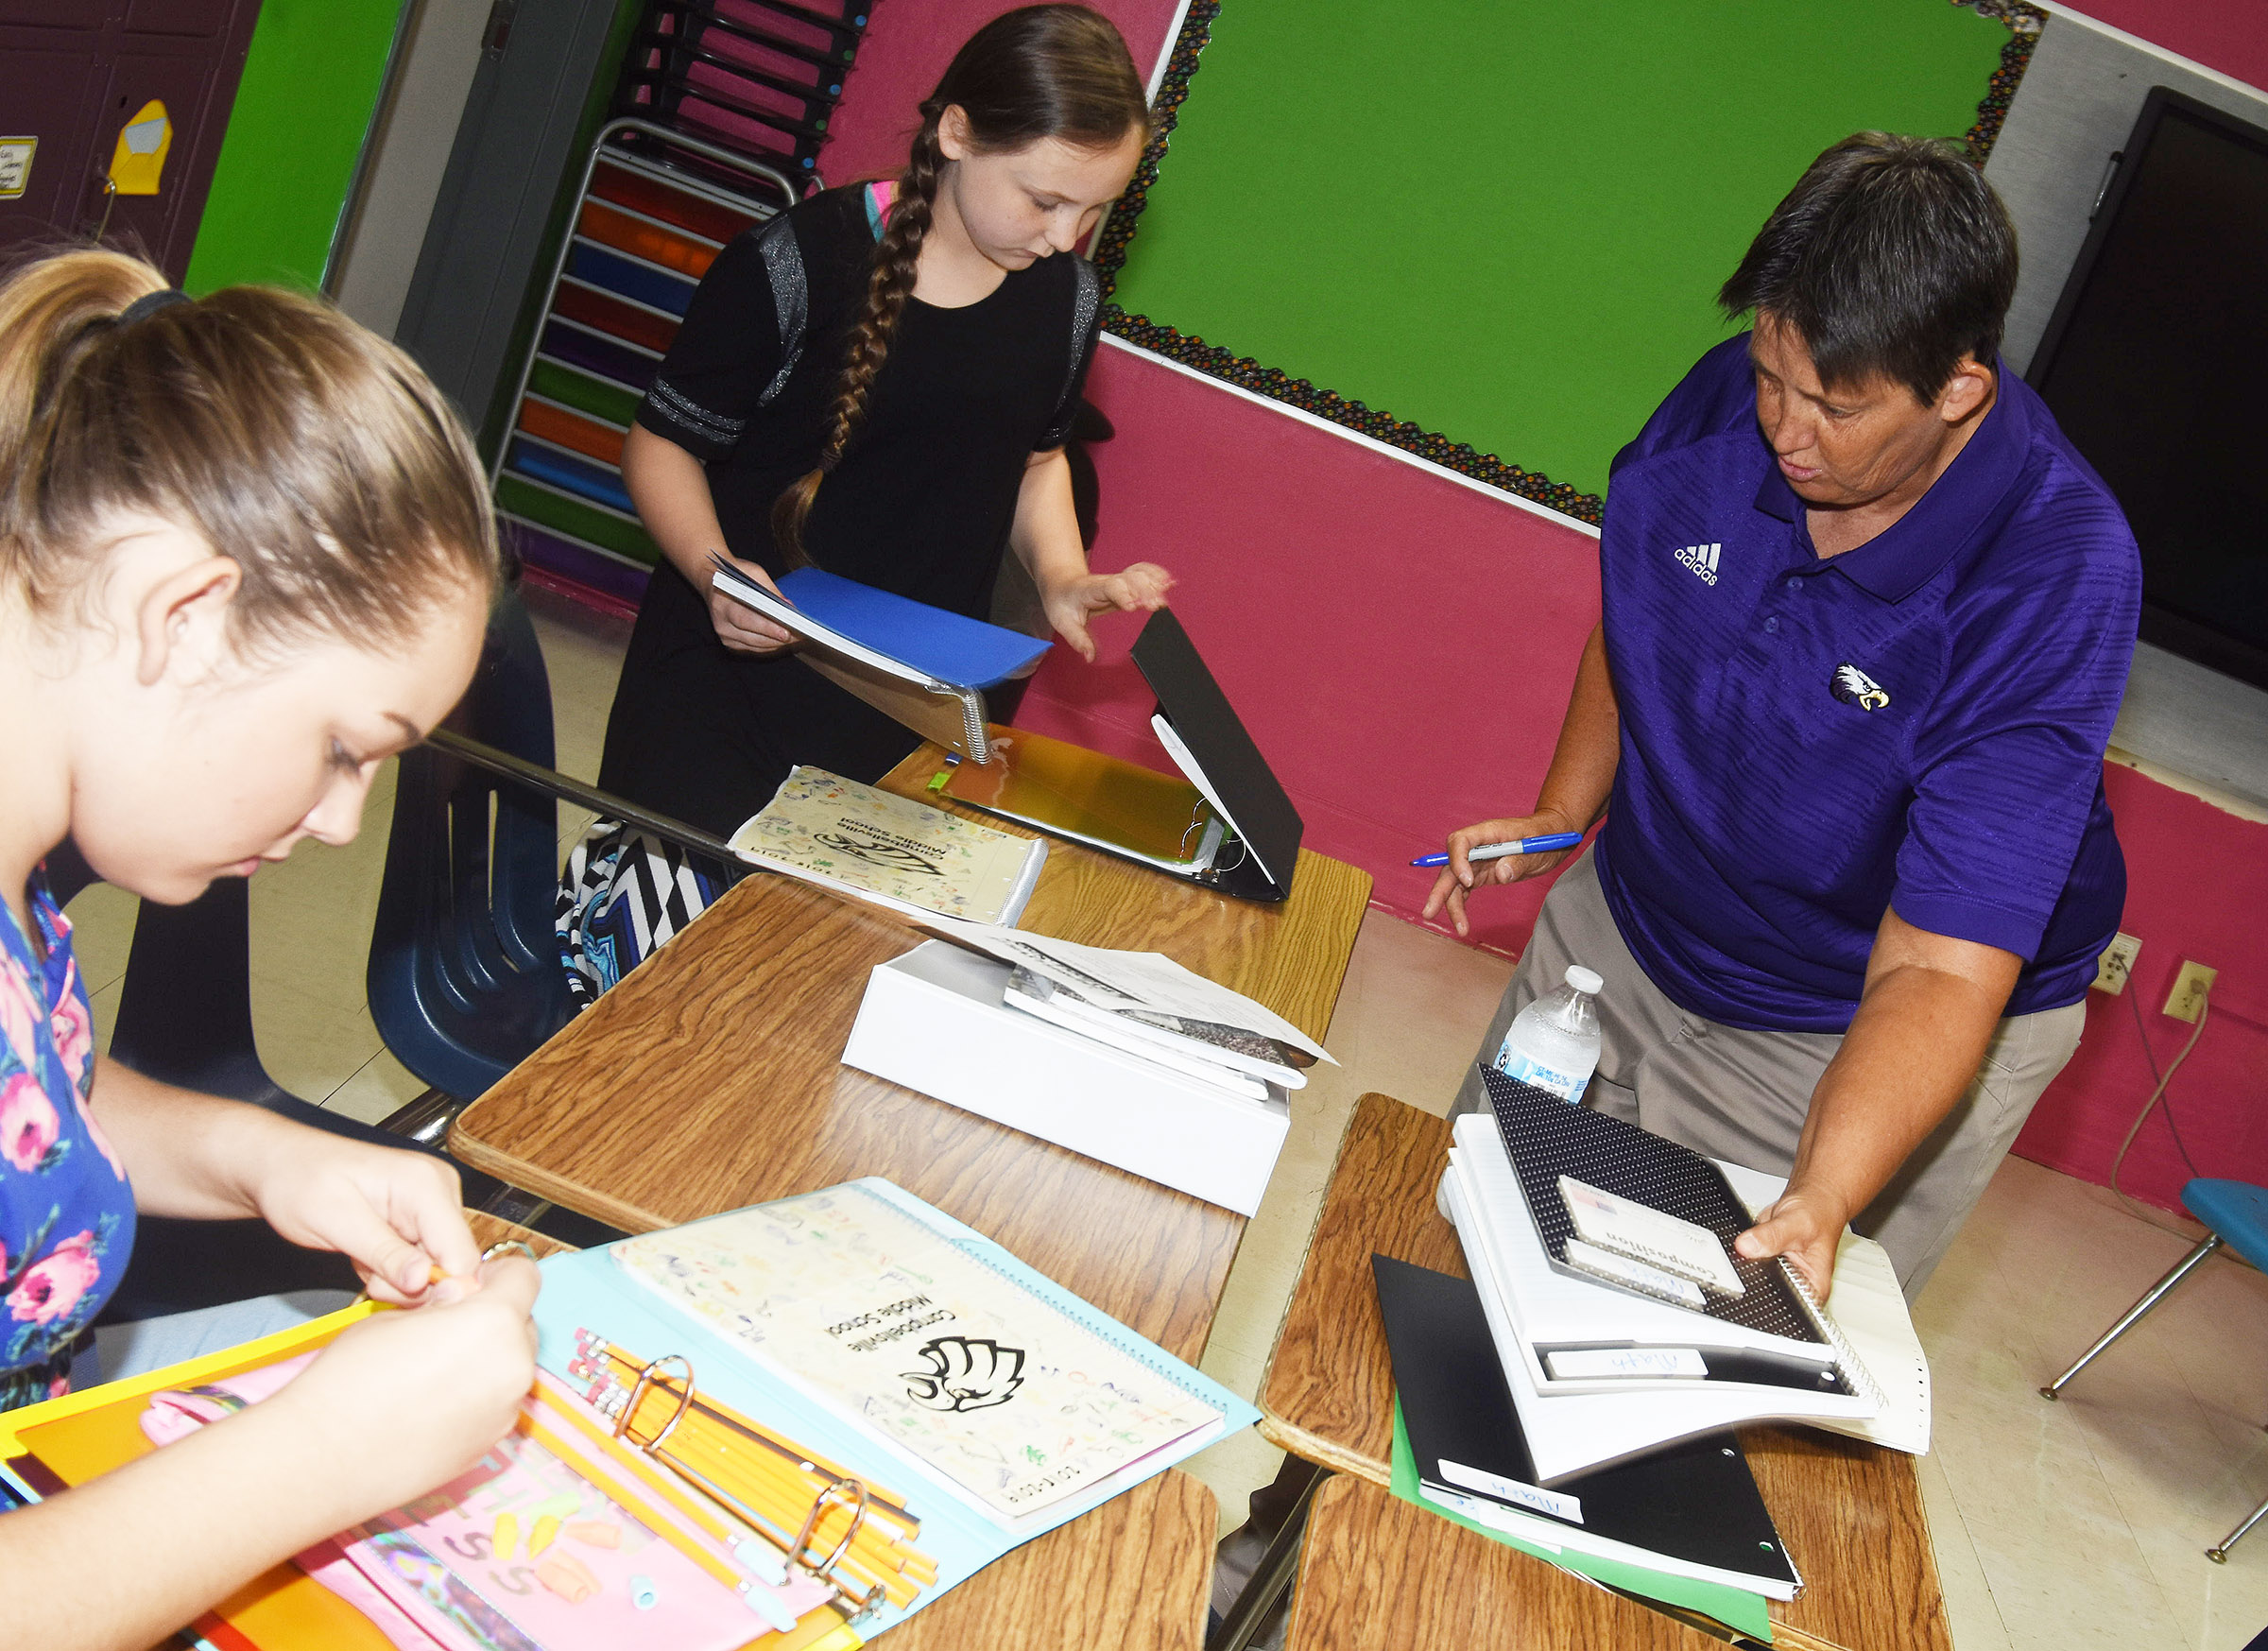 CMS exceptional child educator Katie Campbell helps sixth-graders Piper Maggard, at left, and Shyanna Young prepare their school supplies.